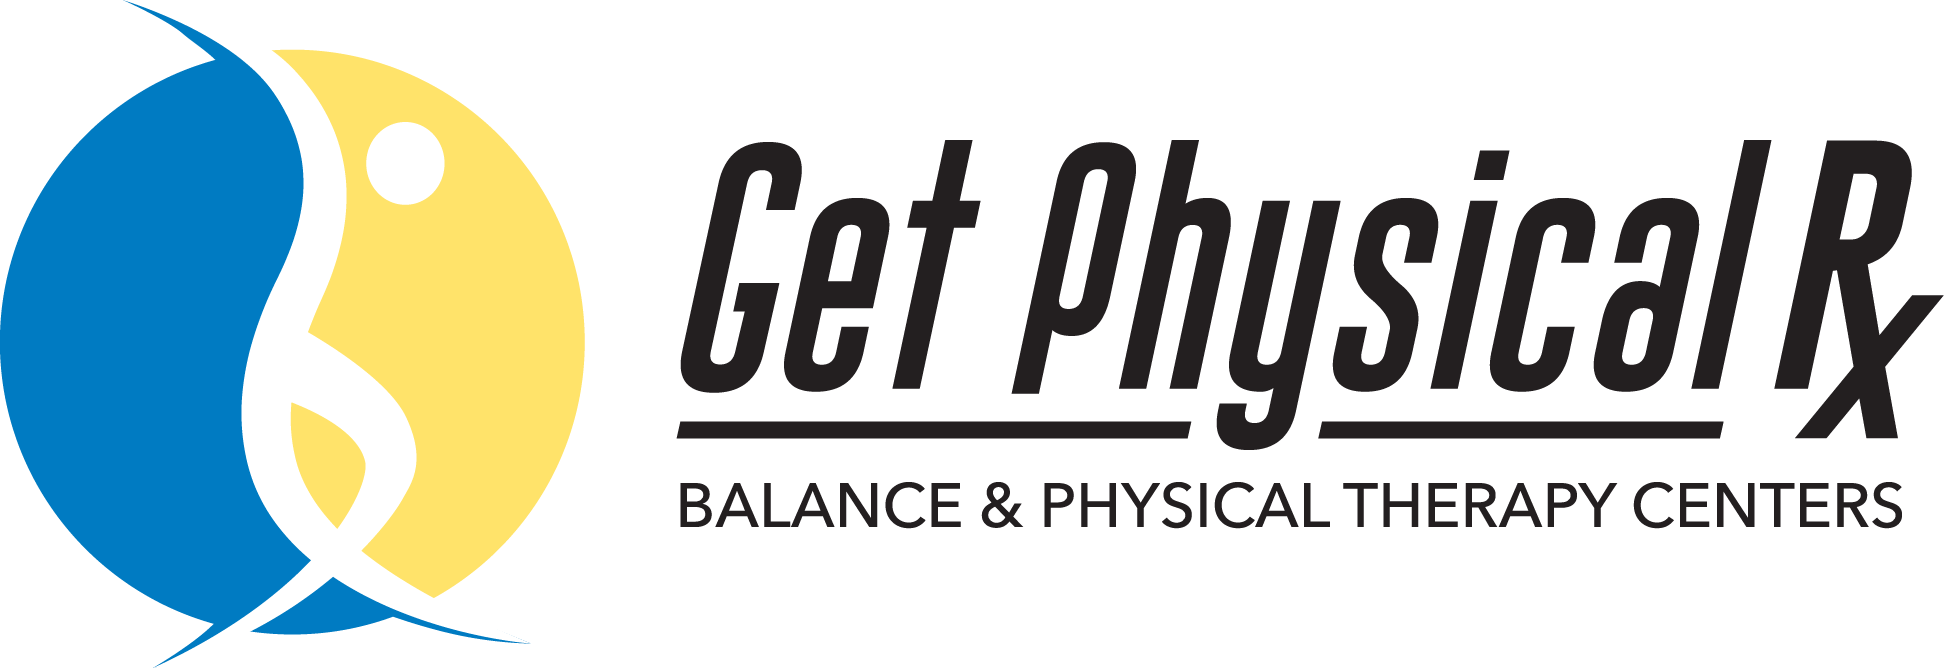 Get Physical Rx